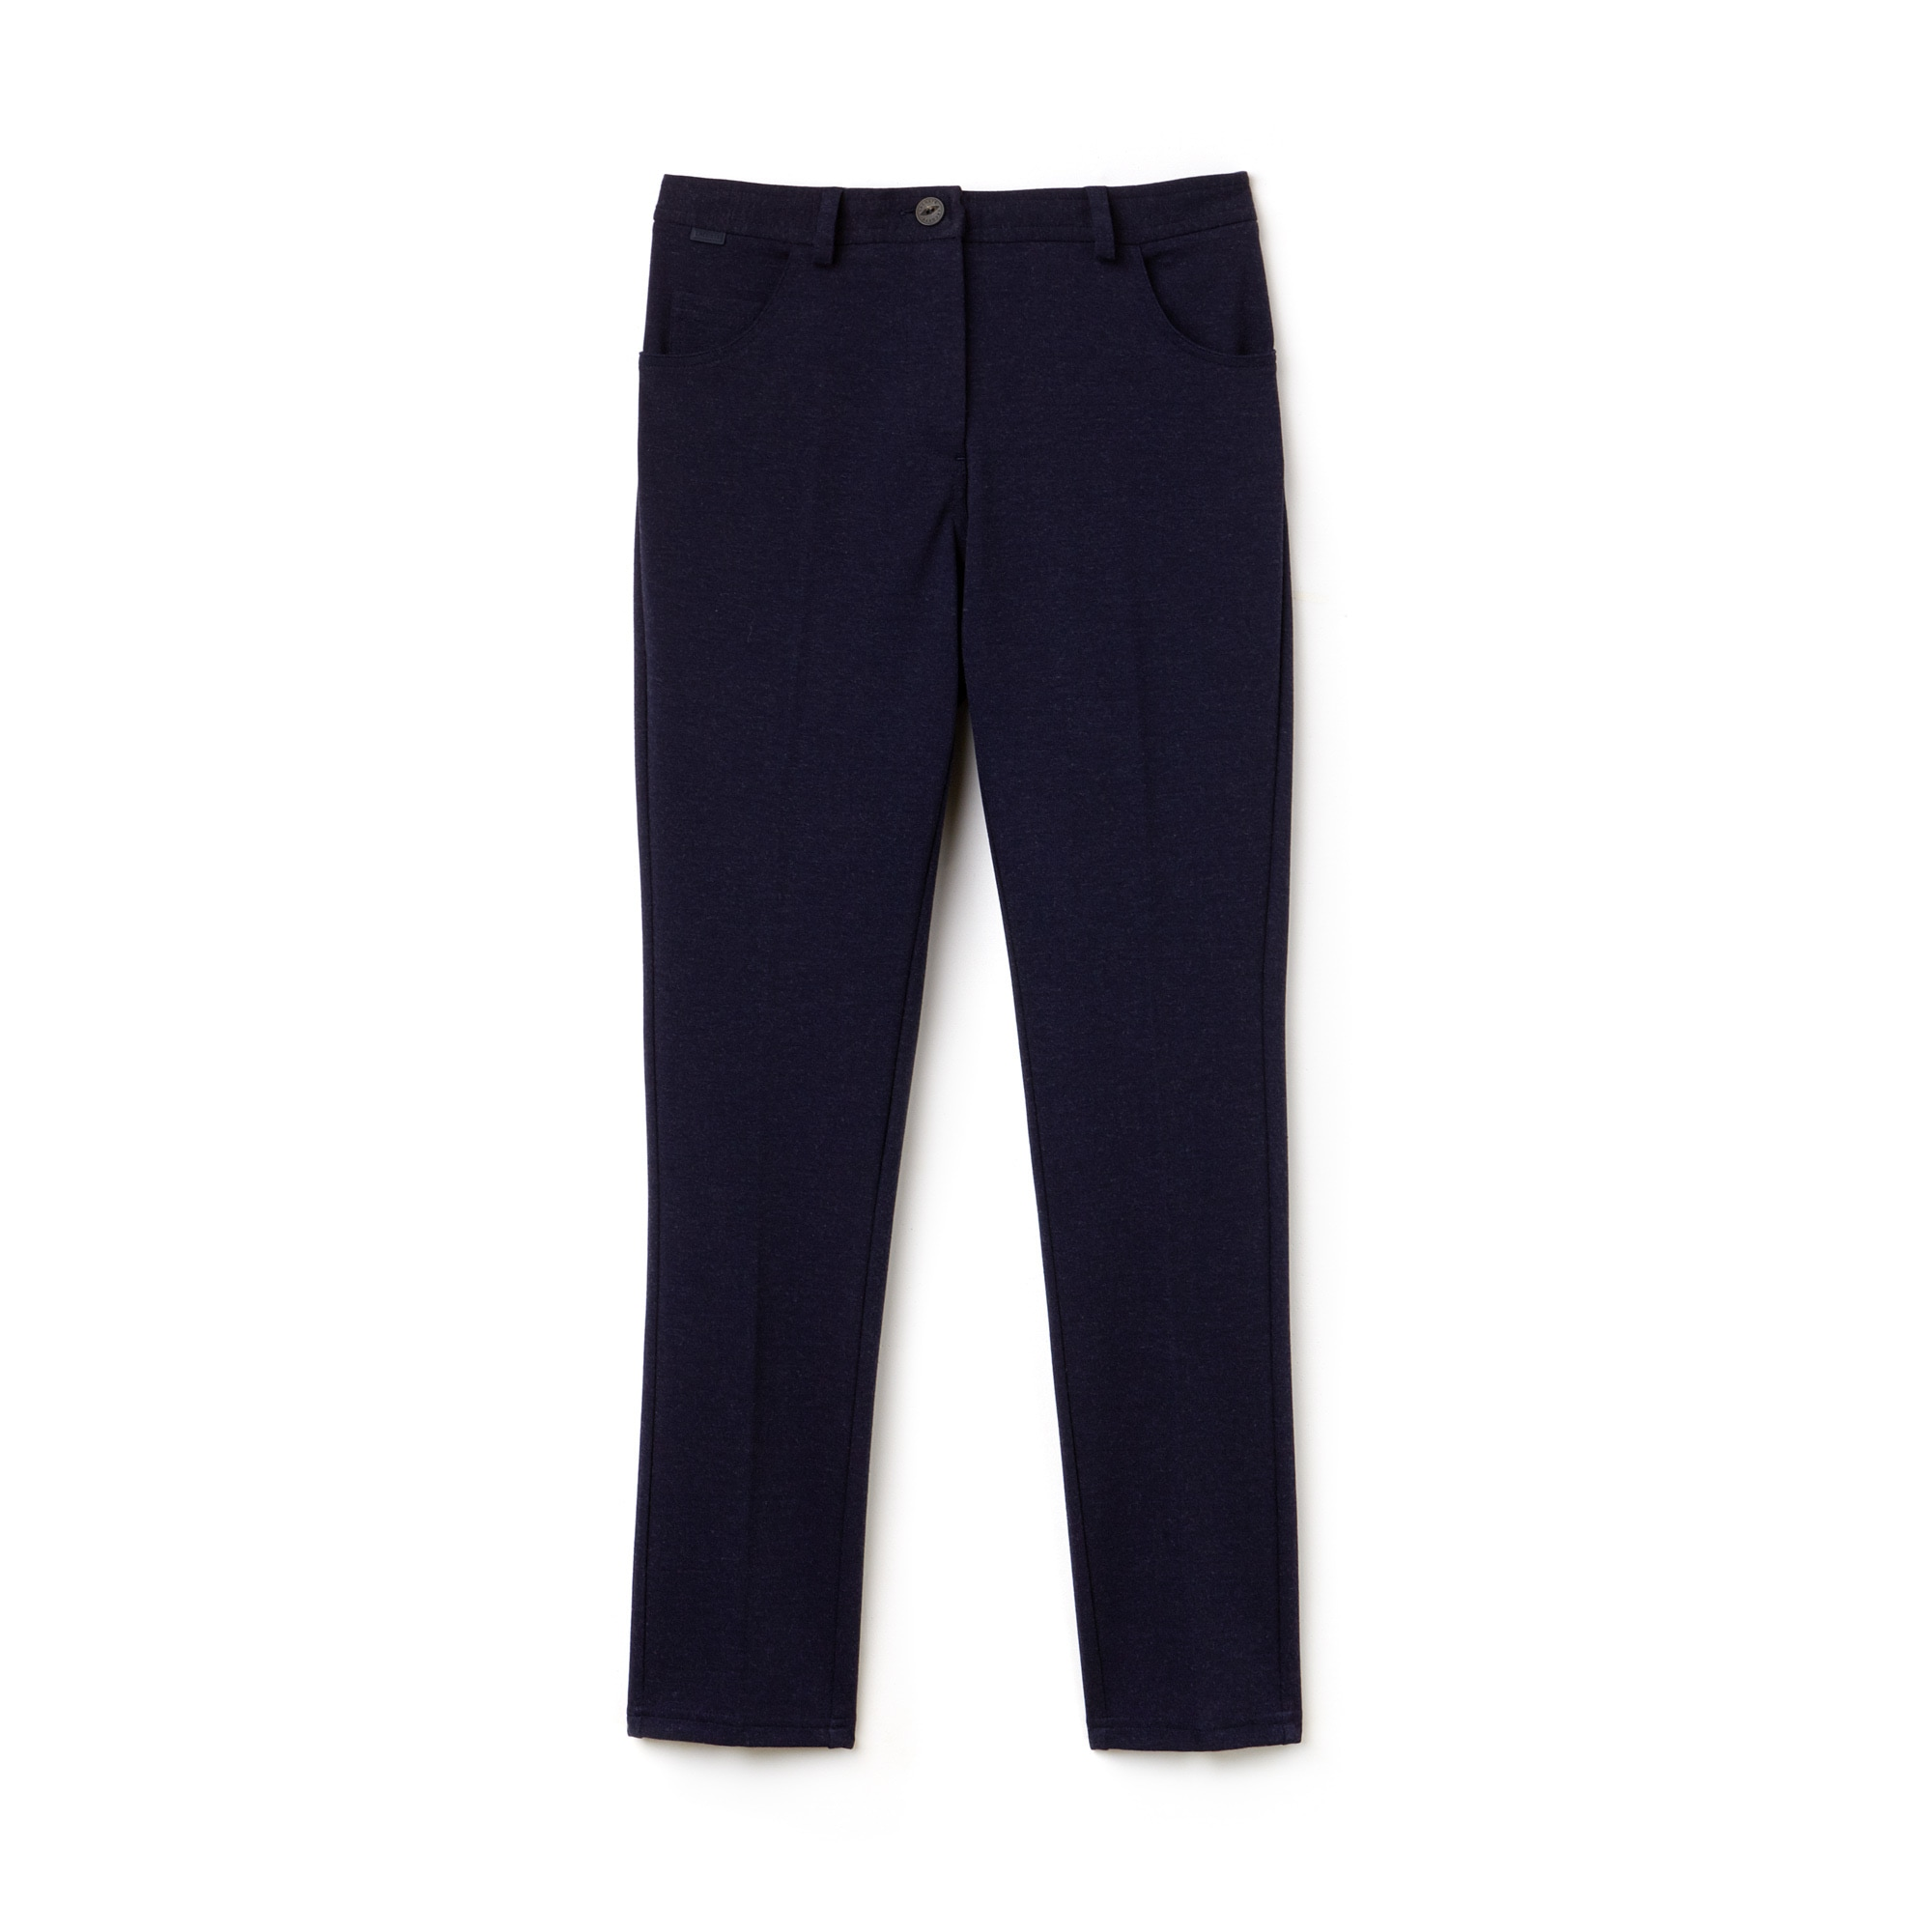 Women's Five-Pocket Milano Knit Pants